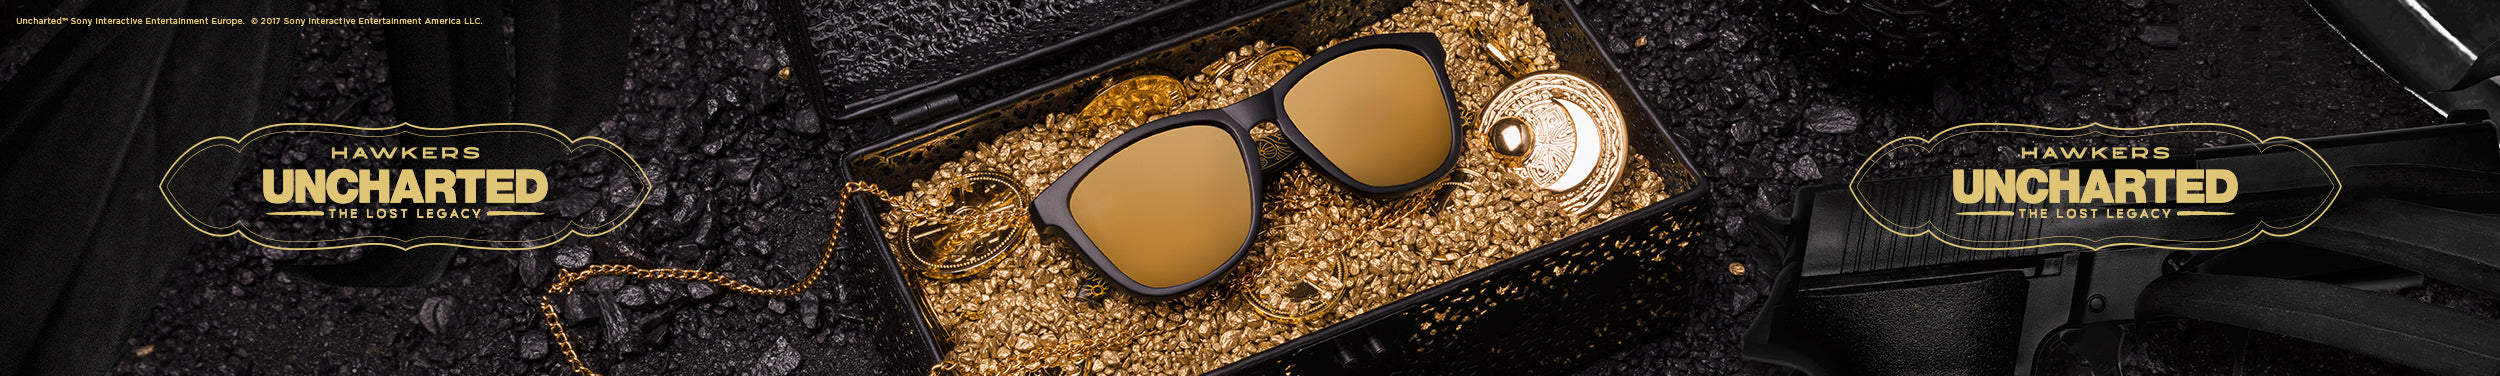 Hawkers Uncharted collection Sunglasses